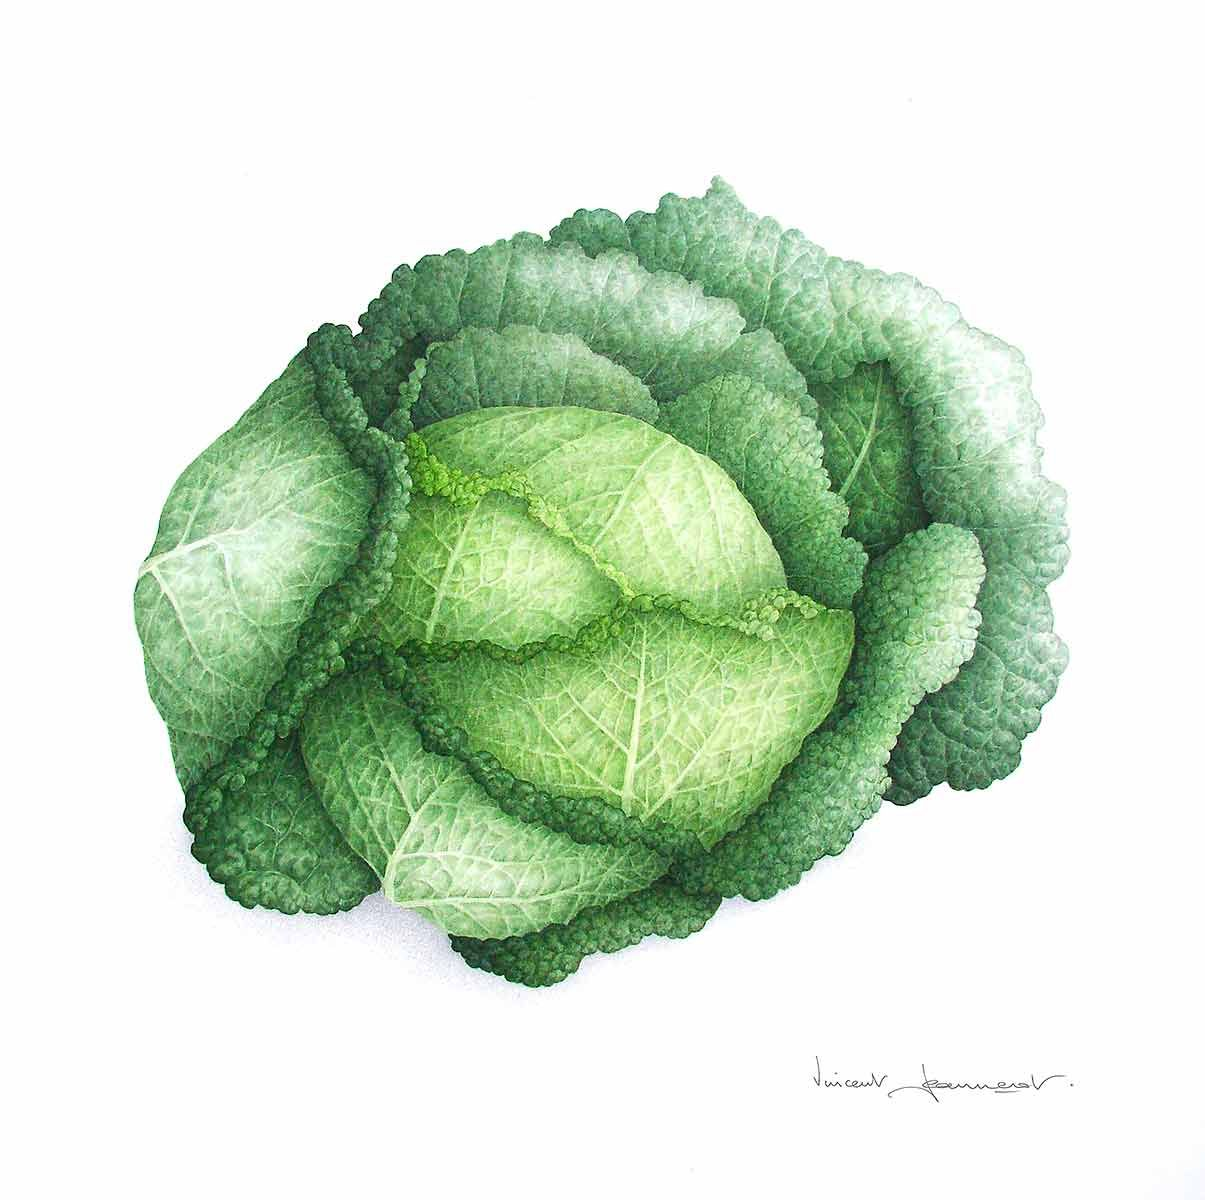 Cabbage Dessin Legumes Illustration Botanique Et Illustration